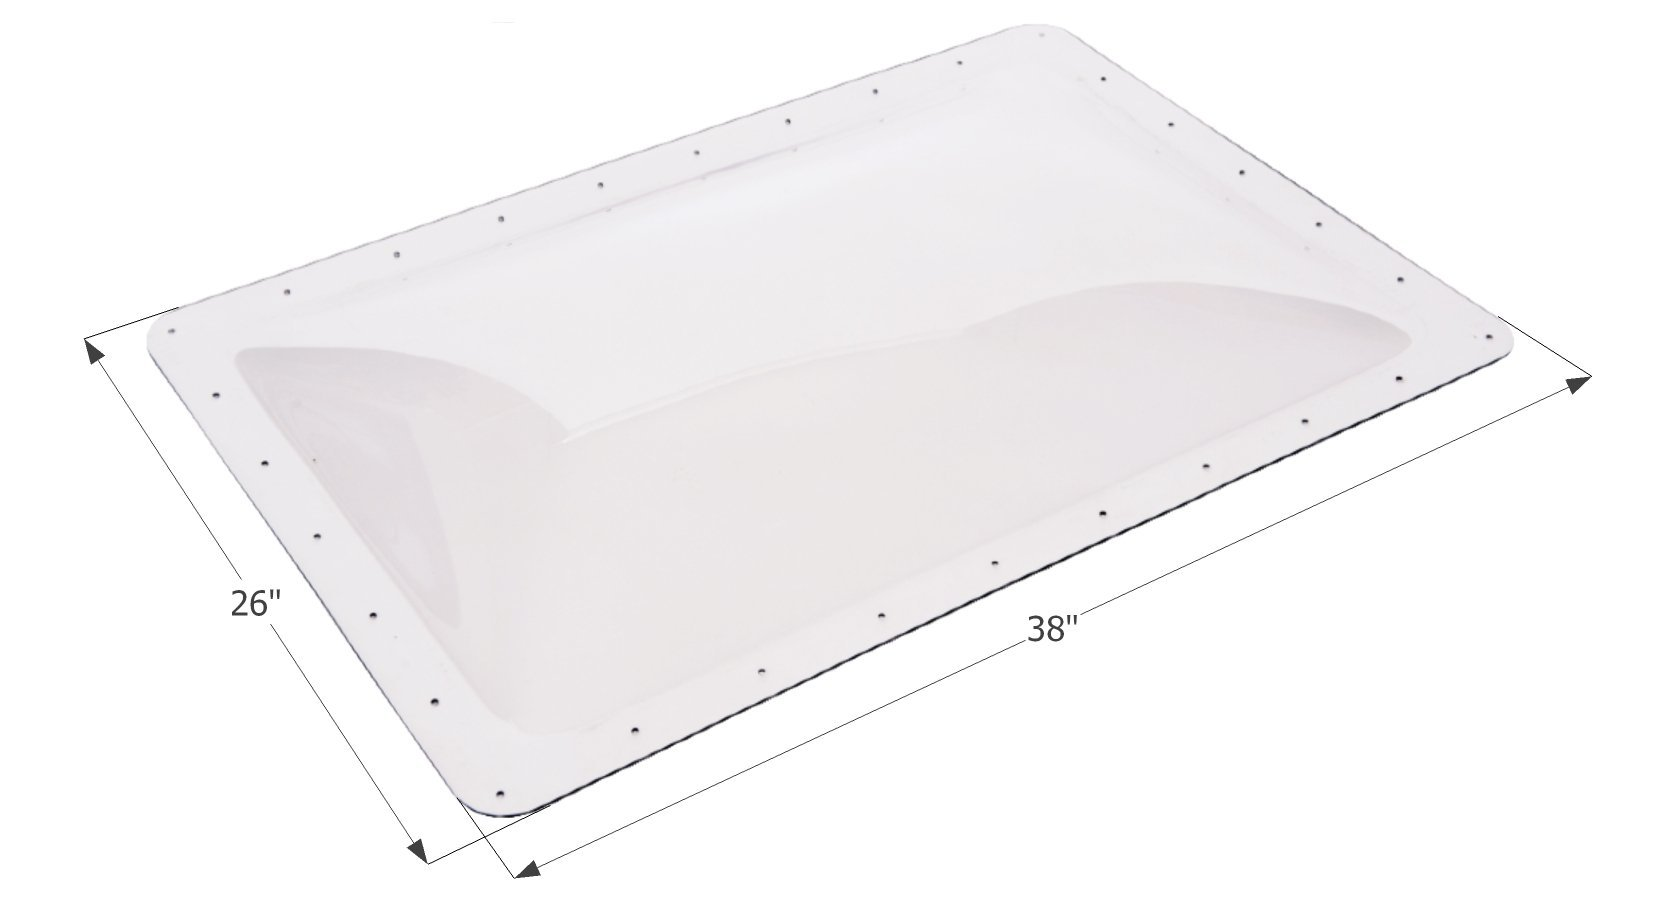 ICON 01860 RV Skylight by ICON